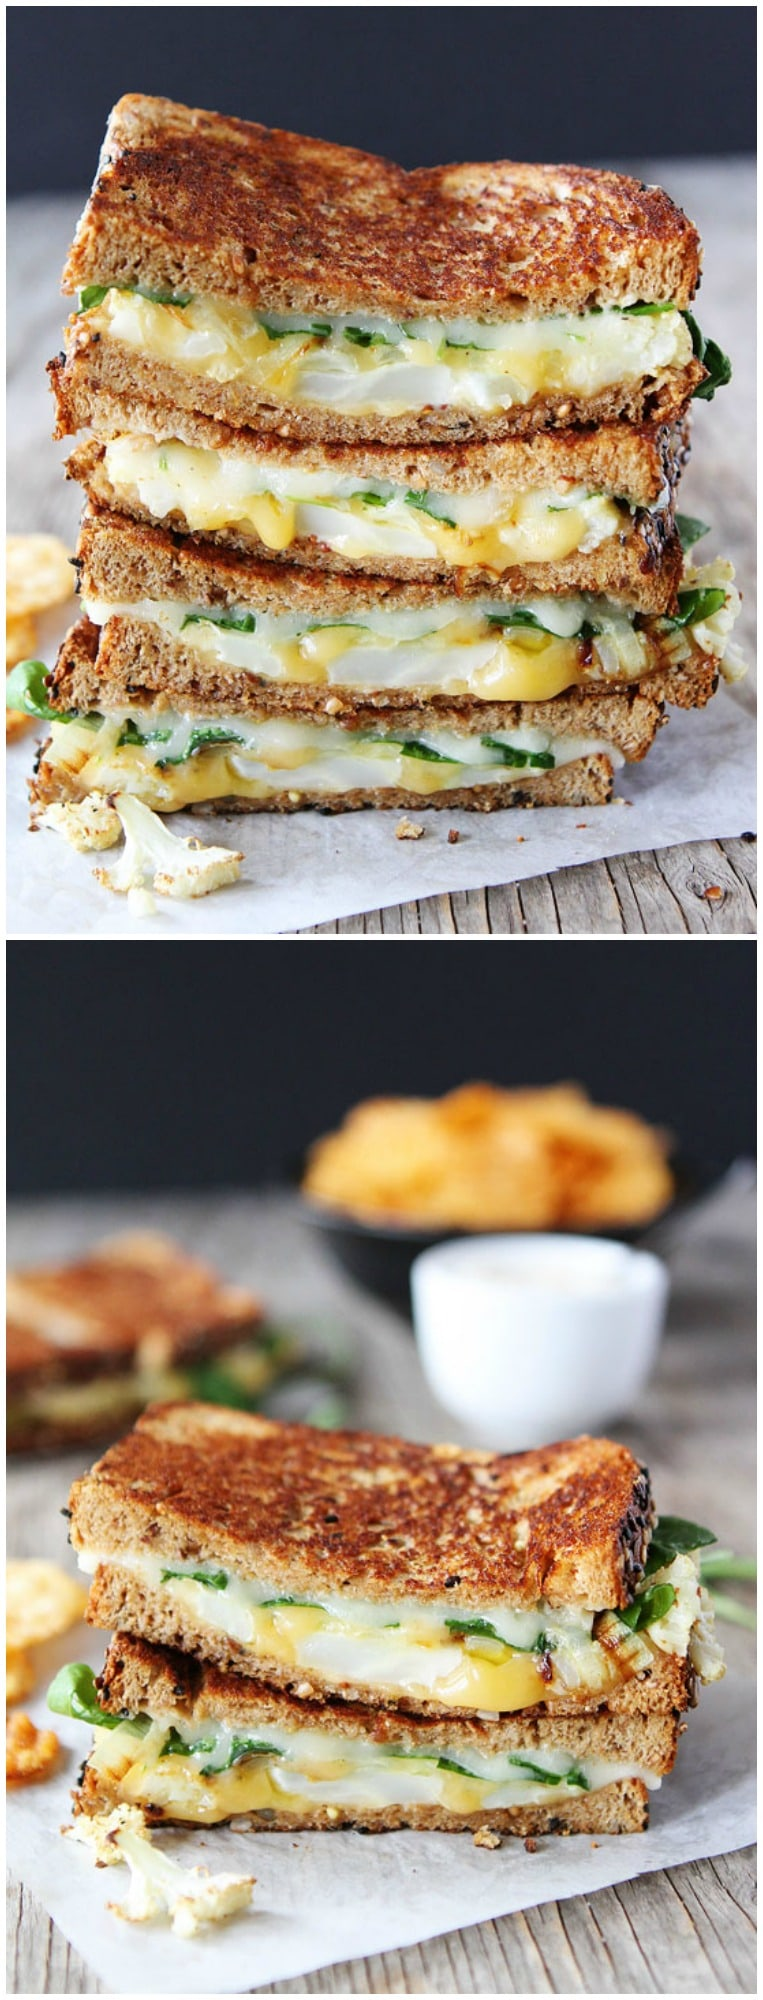 Roasted Cauliflower Grilled Cheese Sandwich on twopeasandtheirpod.com You have to try this grilled cheese! It's amazing!